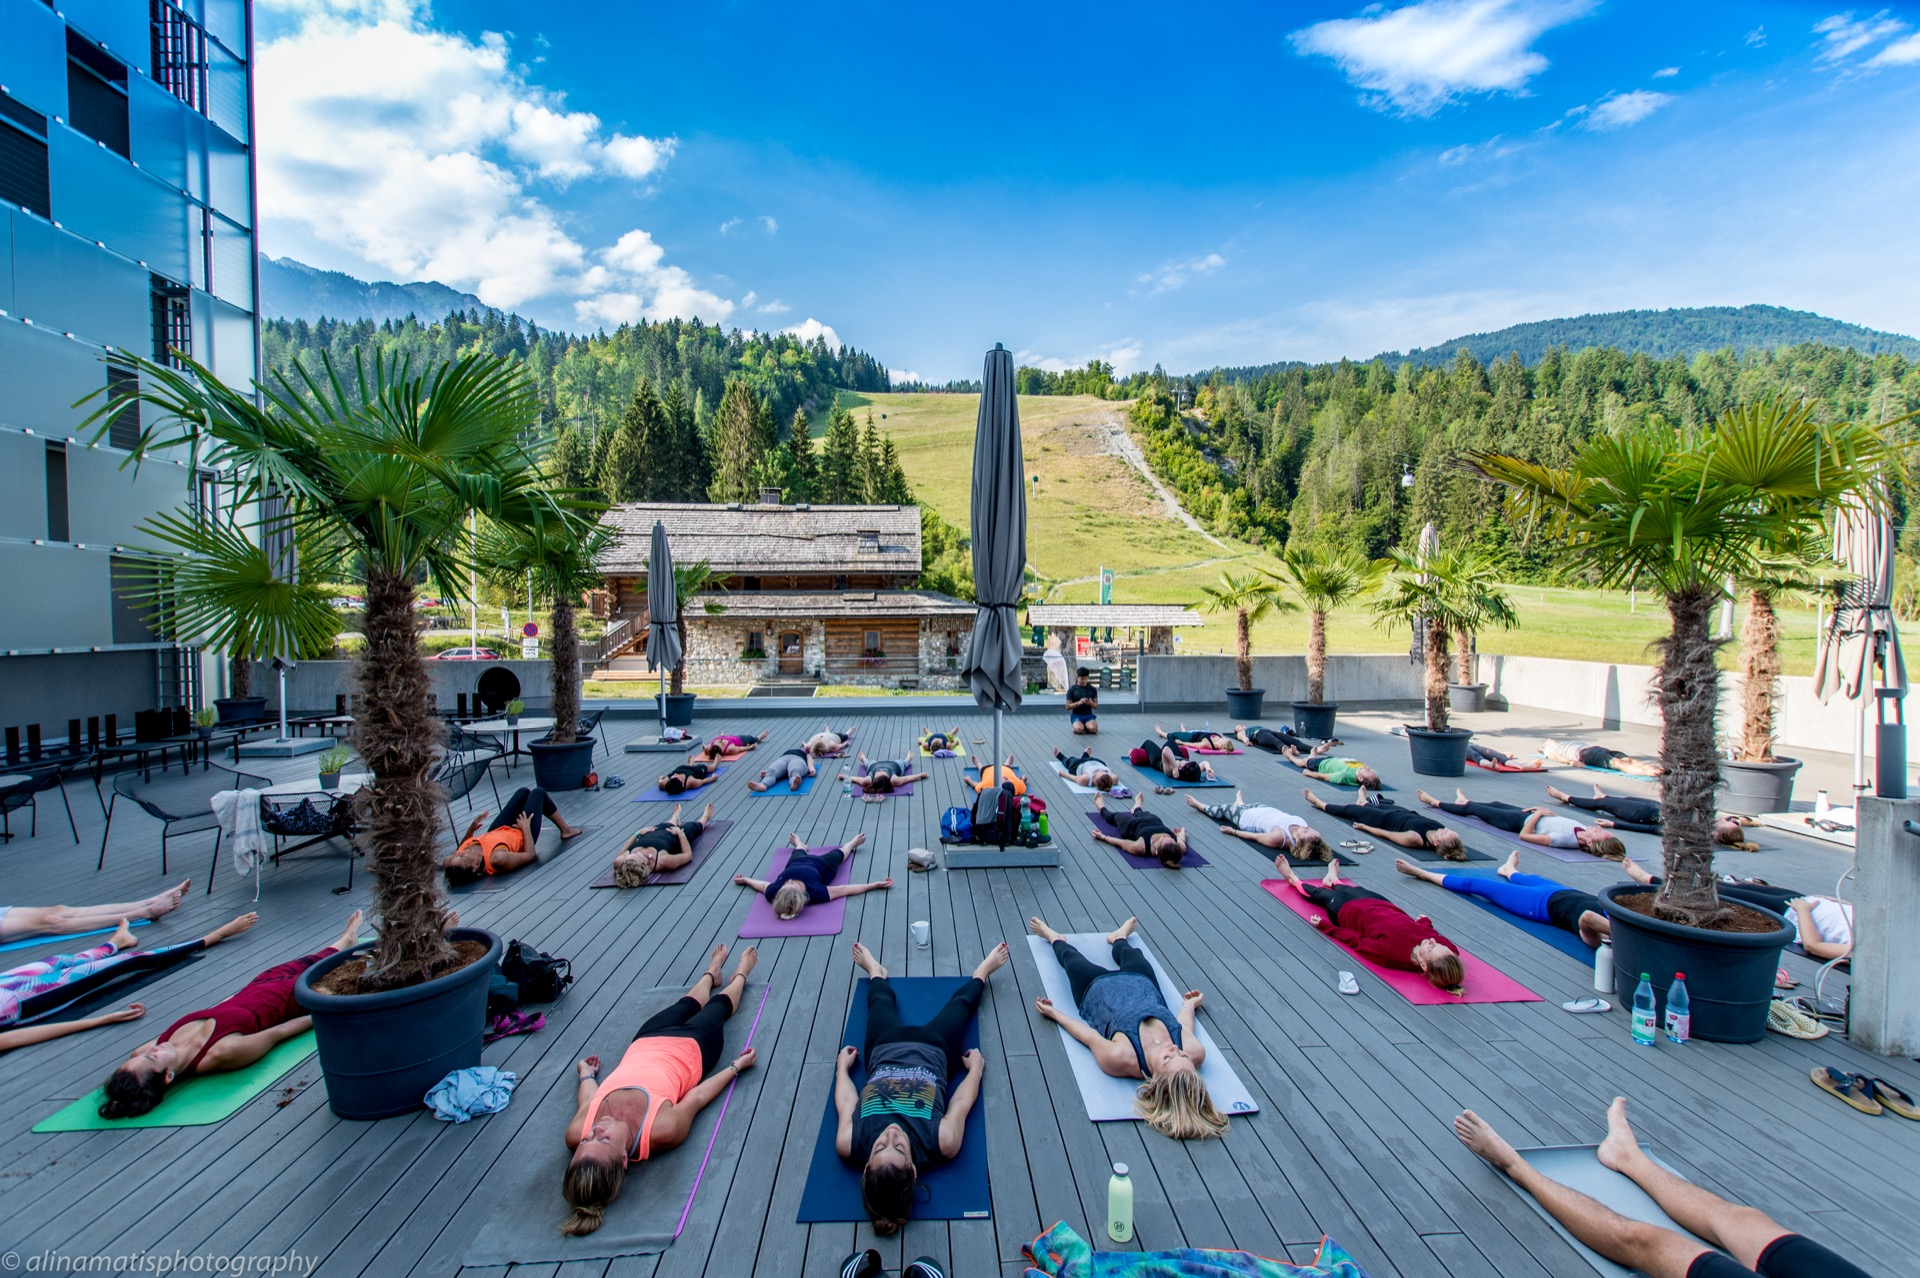 Hie-Kim-Friends-2018-Yoga-Retreat-Alina-Matis-Photography-055 - Hie Kim Yoga - Yoga Retreat - Yoga Workshops und Reisen